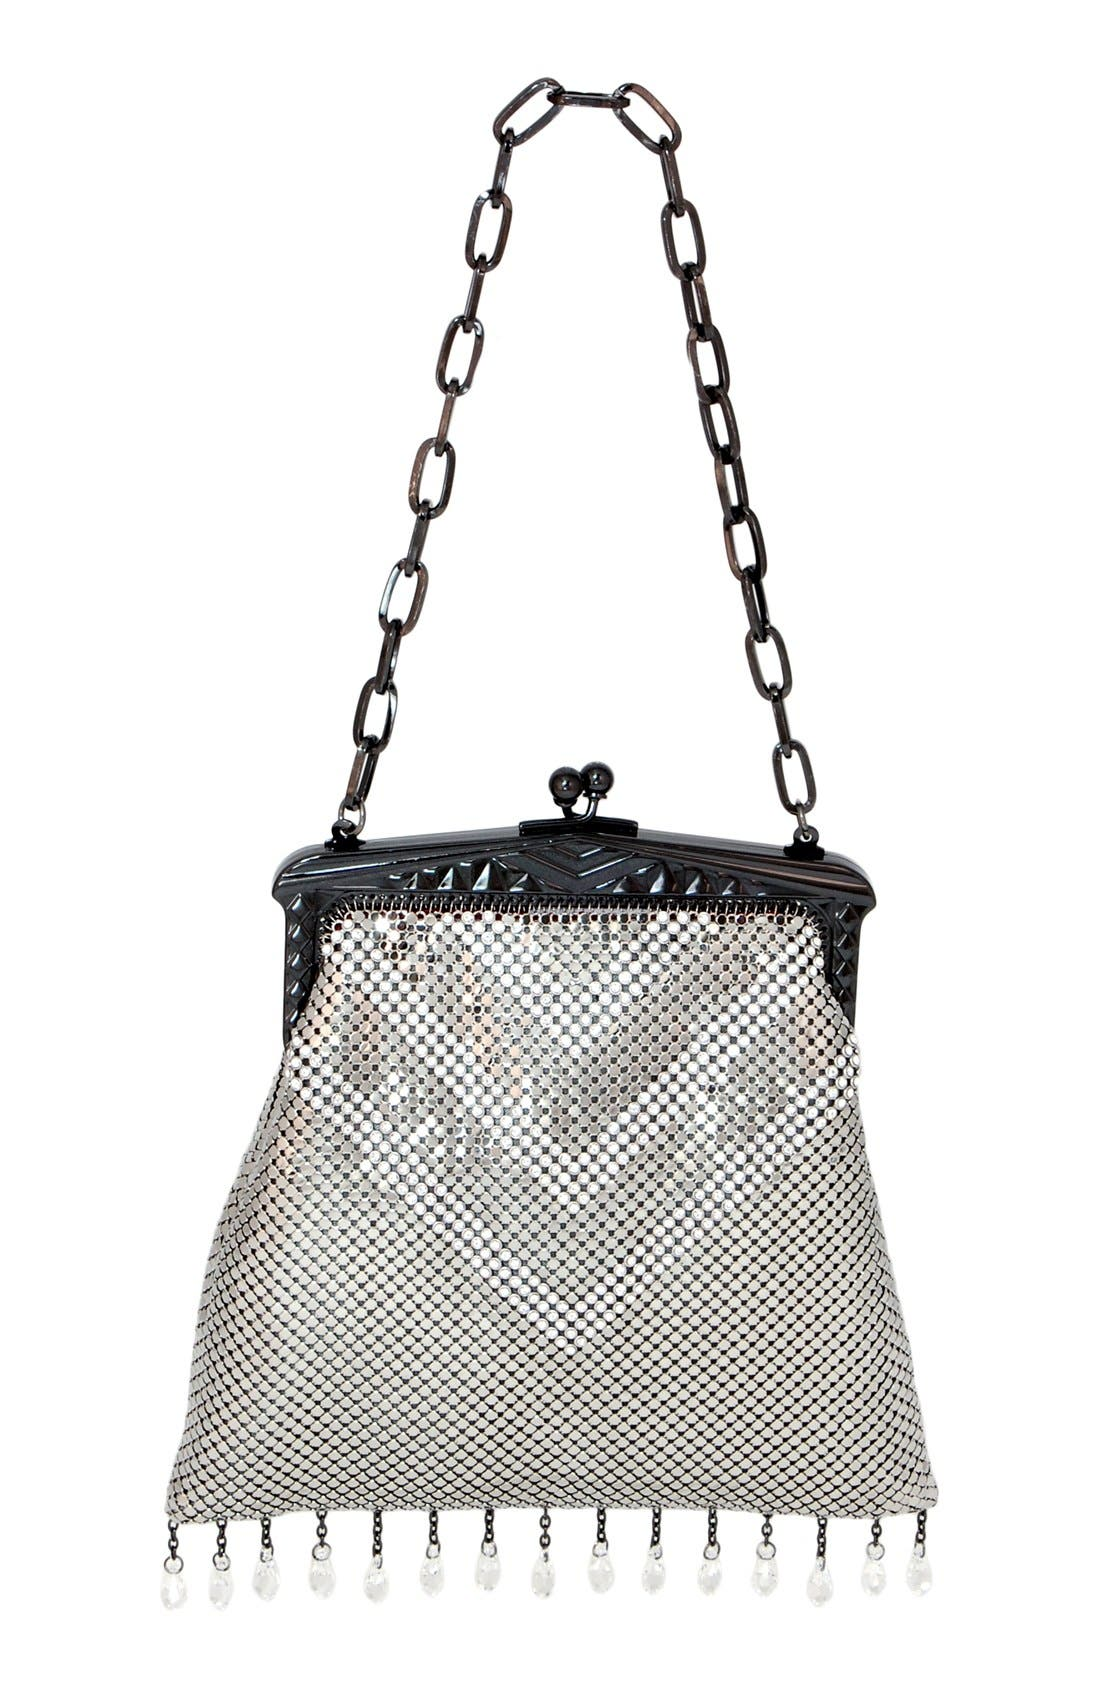 Alternate Image 1 Selected - Whiting & Davis 'Heritage - Deco' Mesh Clutch